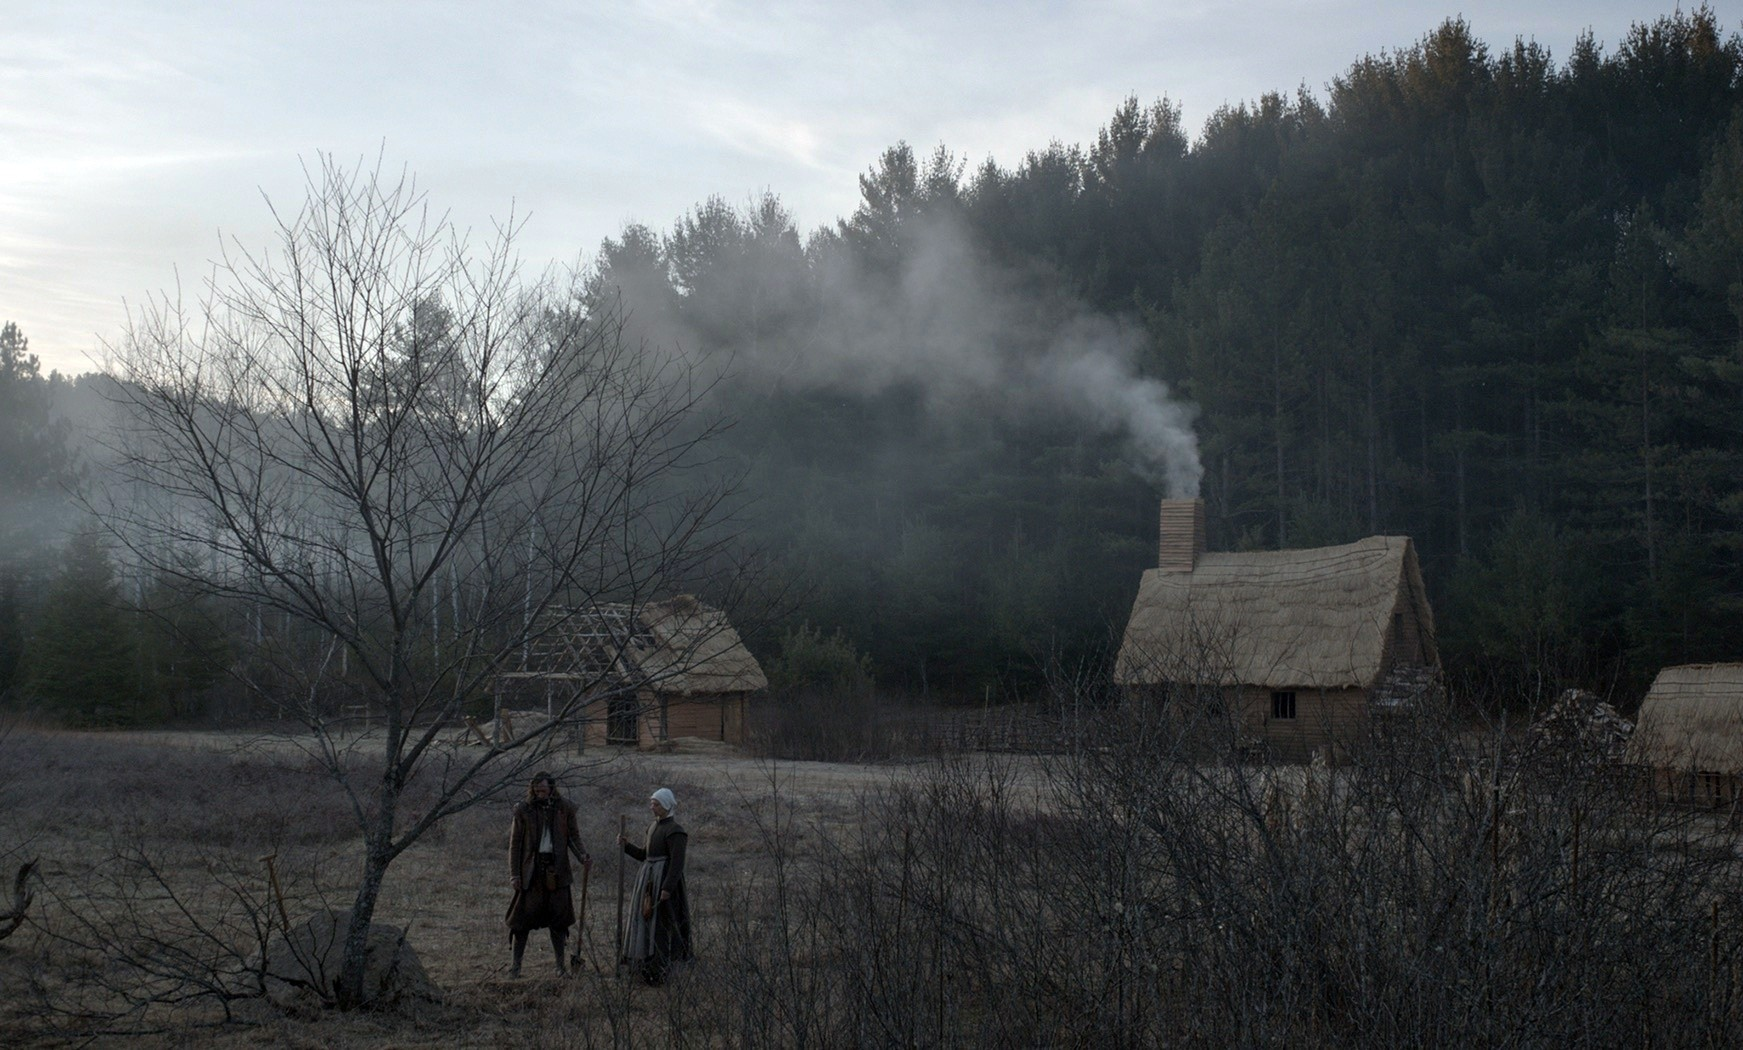 Husband and wife Ralph Ineson and Kate Dickie set up home amid the harshness of life in the 17th Century in The Witch: A New-England Folktale (2015)